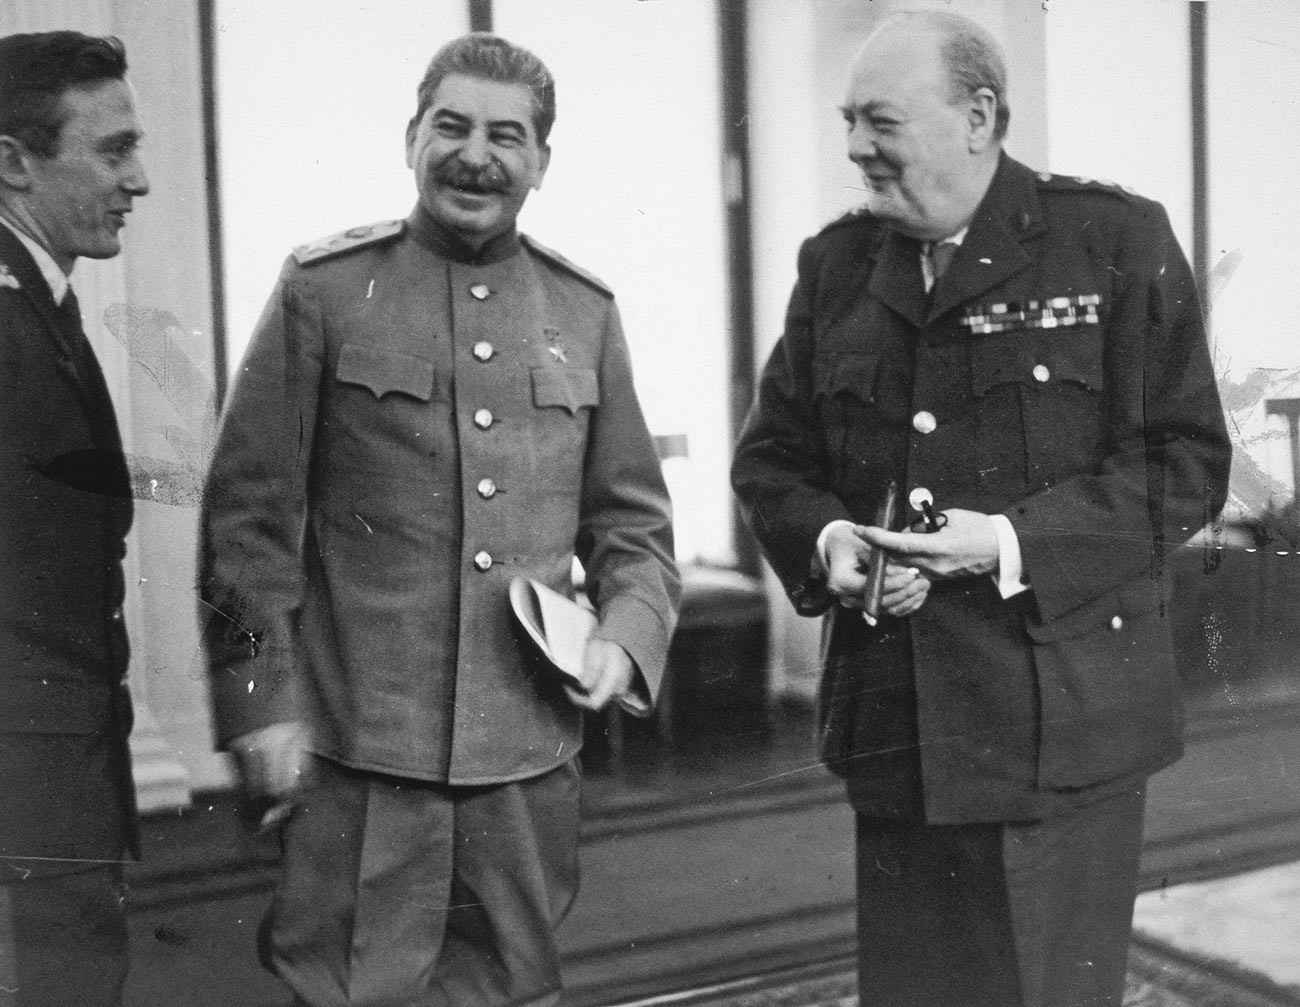 La Conferenza di Yalta. Stalin e Winston Churchill nella sala conferenze